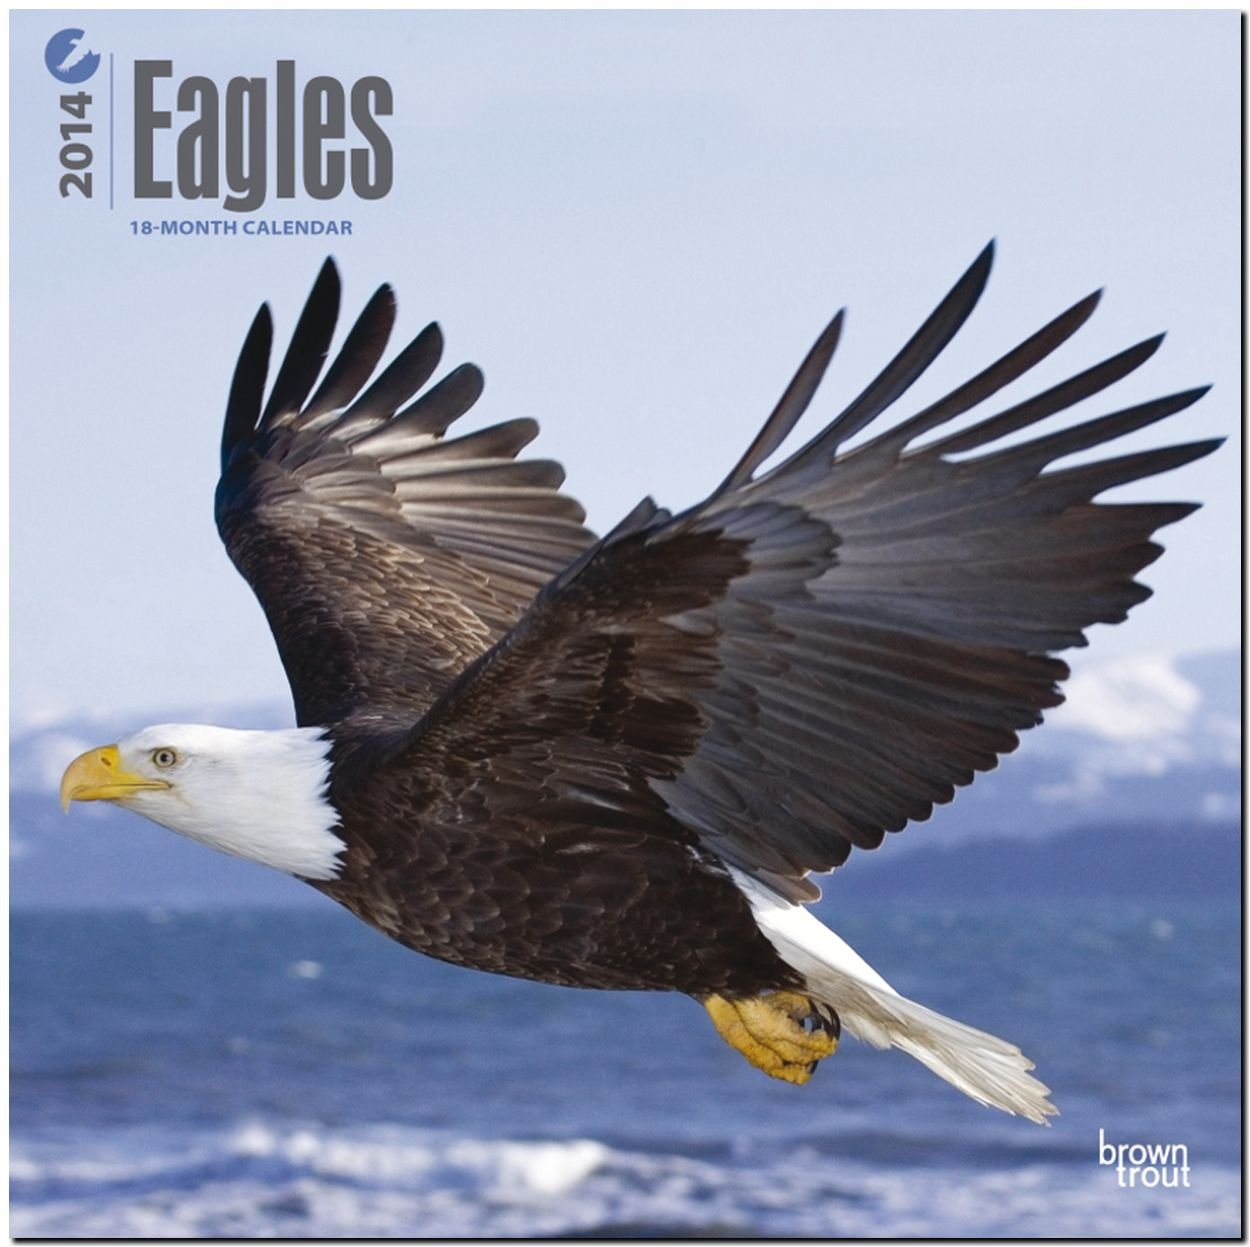 Eagles 18-Month 2014 Calendar (Multilingual Edition) by Browntrout Pub